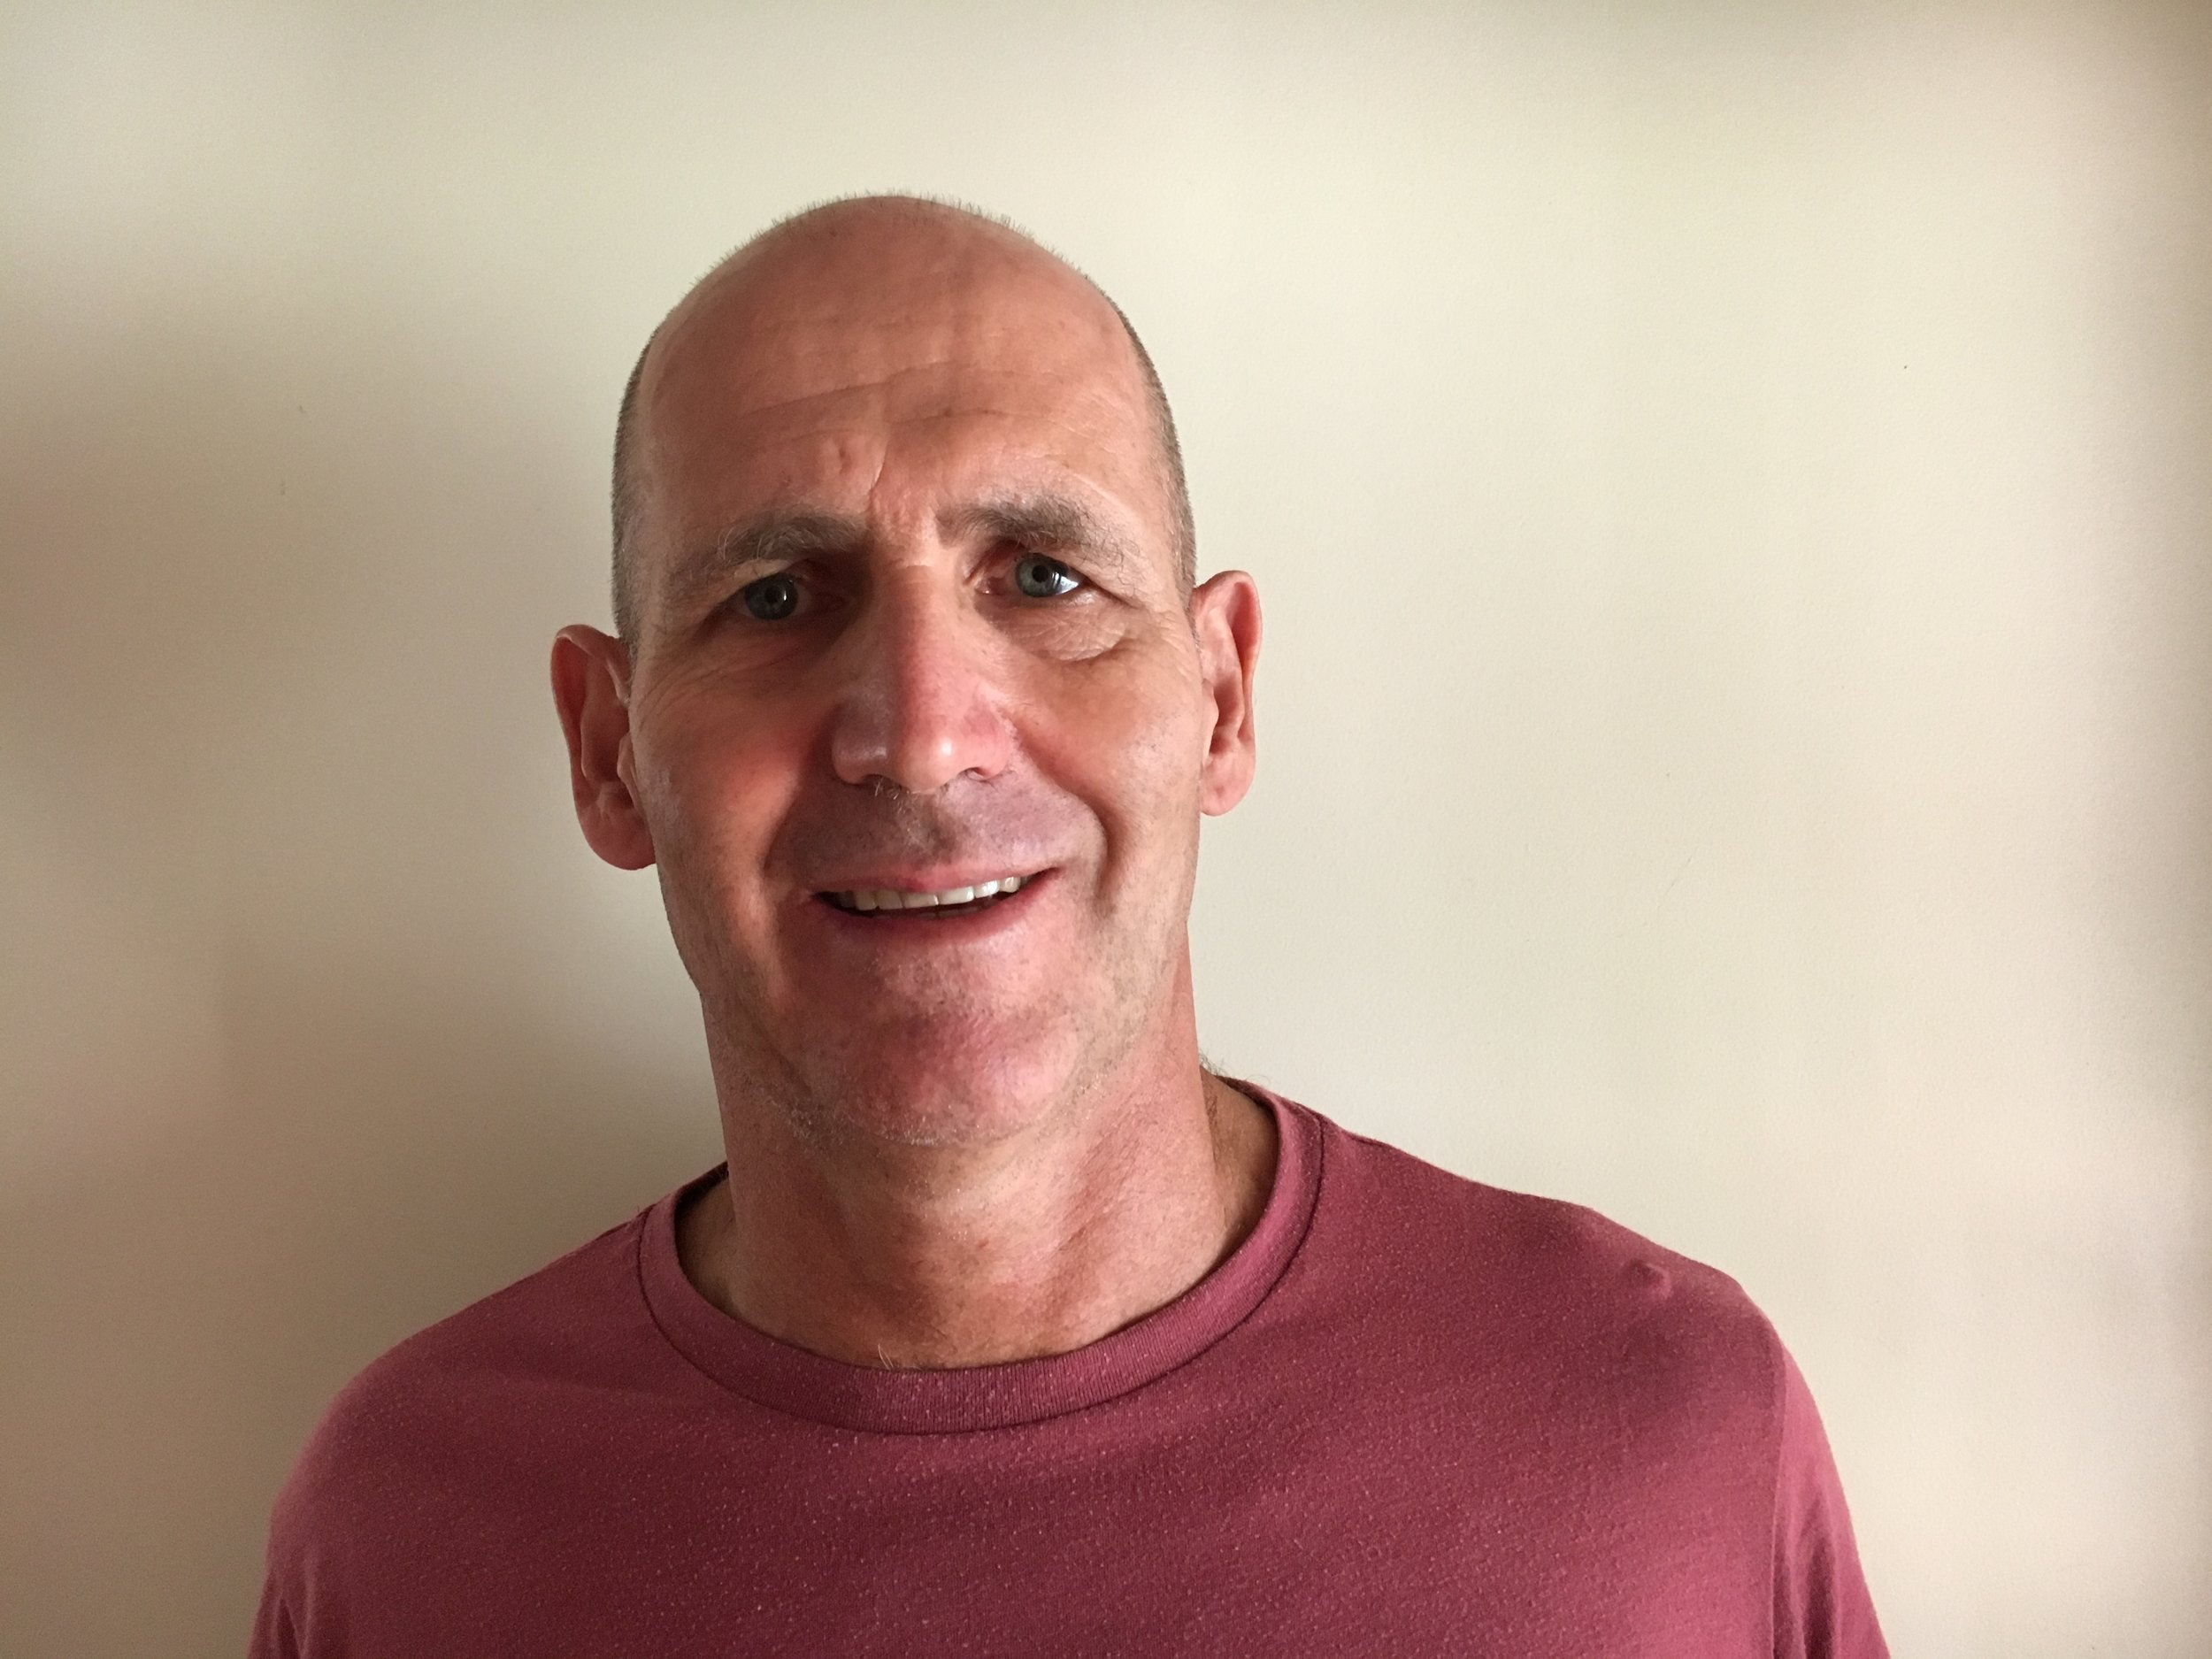 Craig Rodin, Owner and Lead Plumber